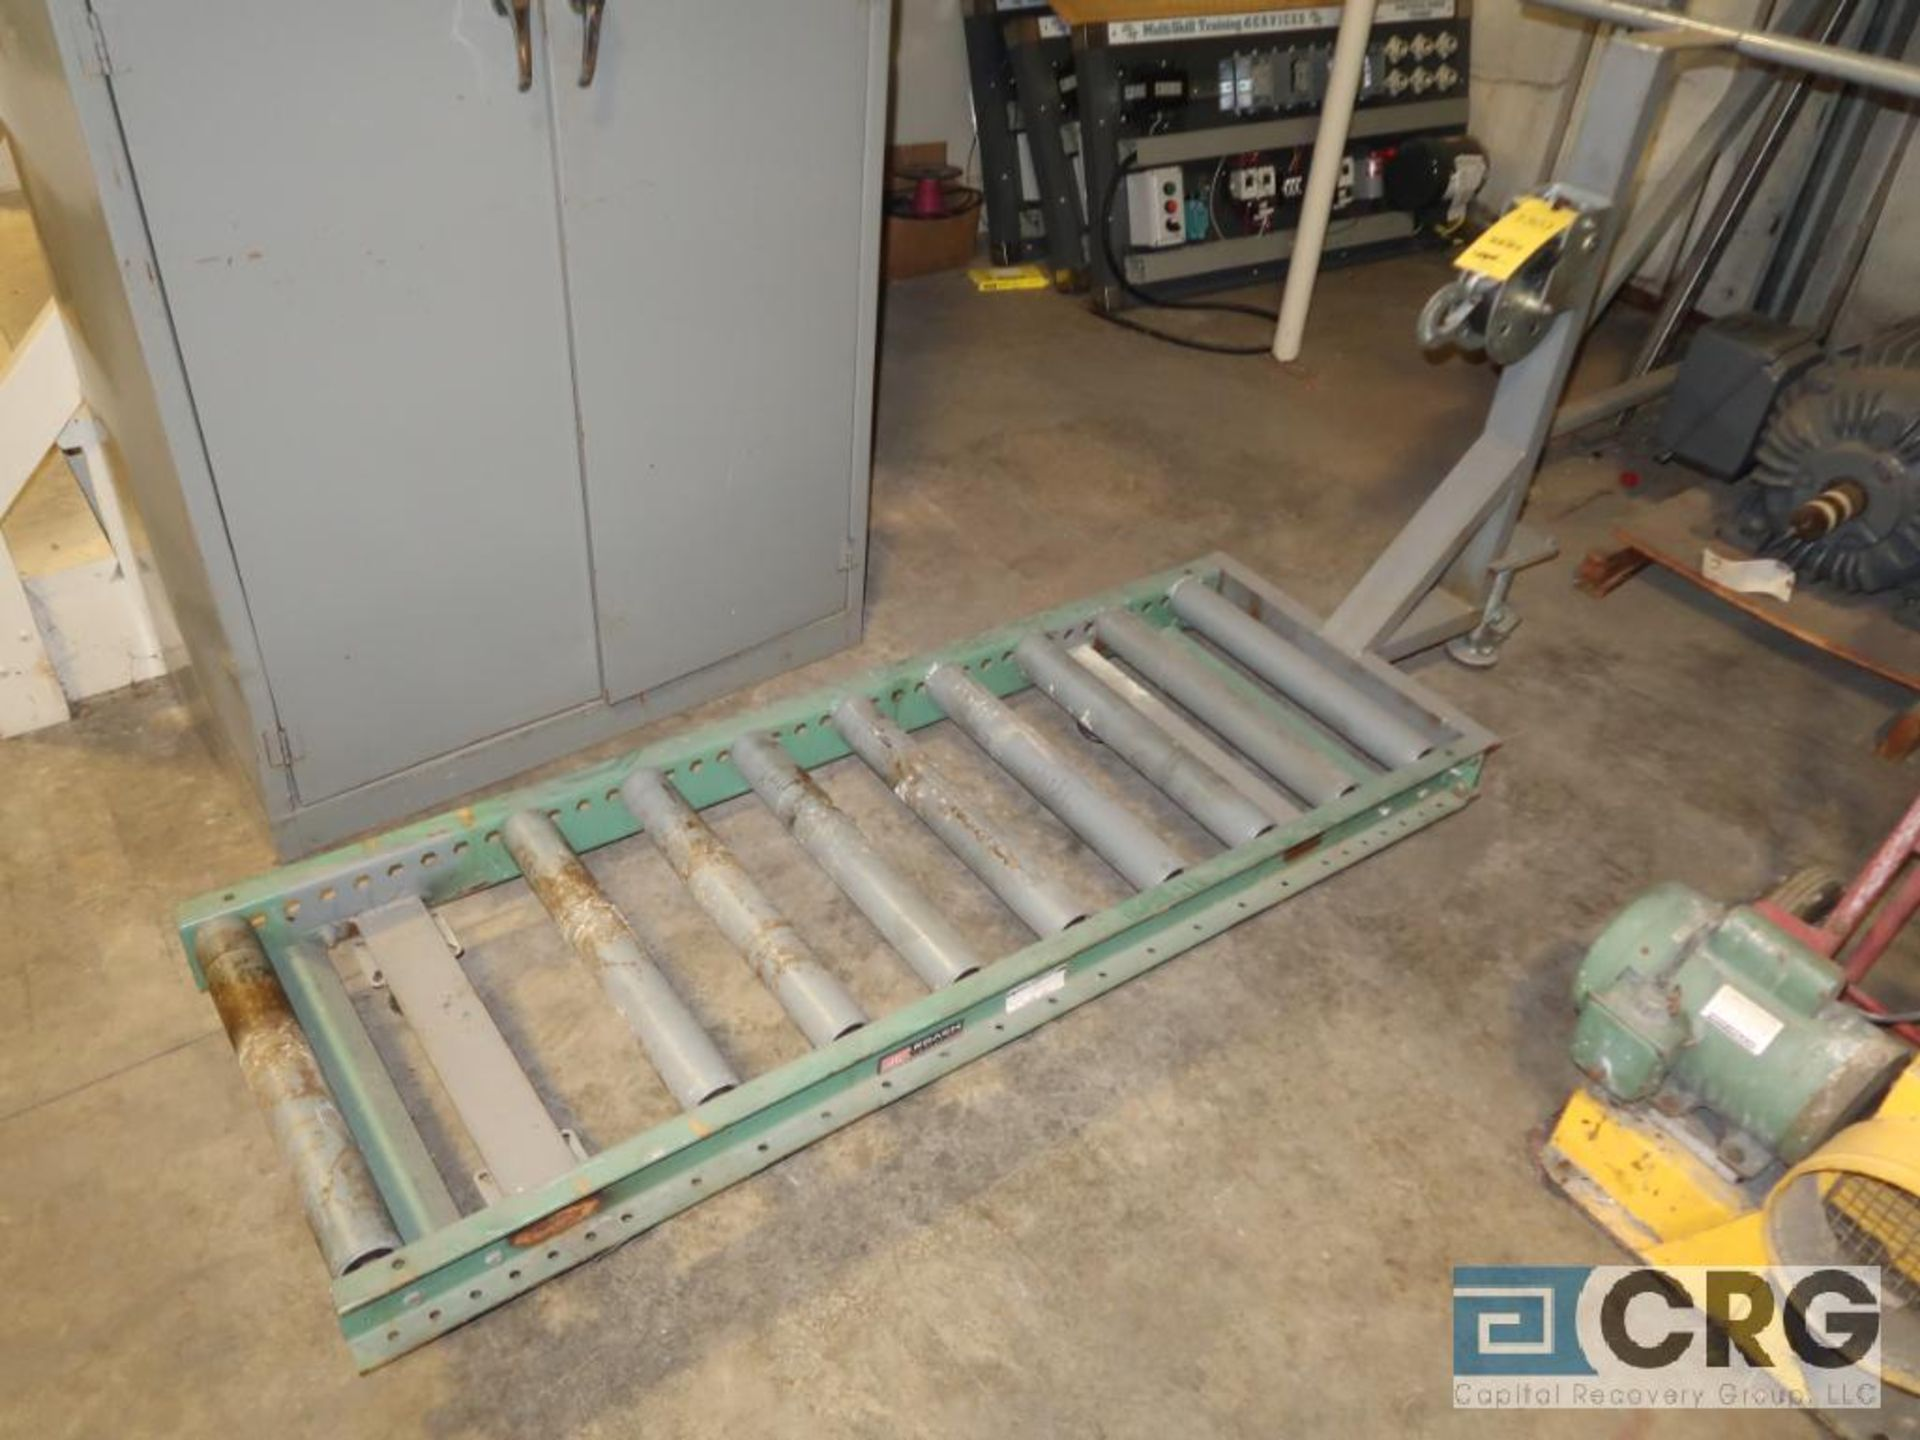 Roach 5 ft. box roller conveyor with manual pulley (Motor Building)